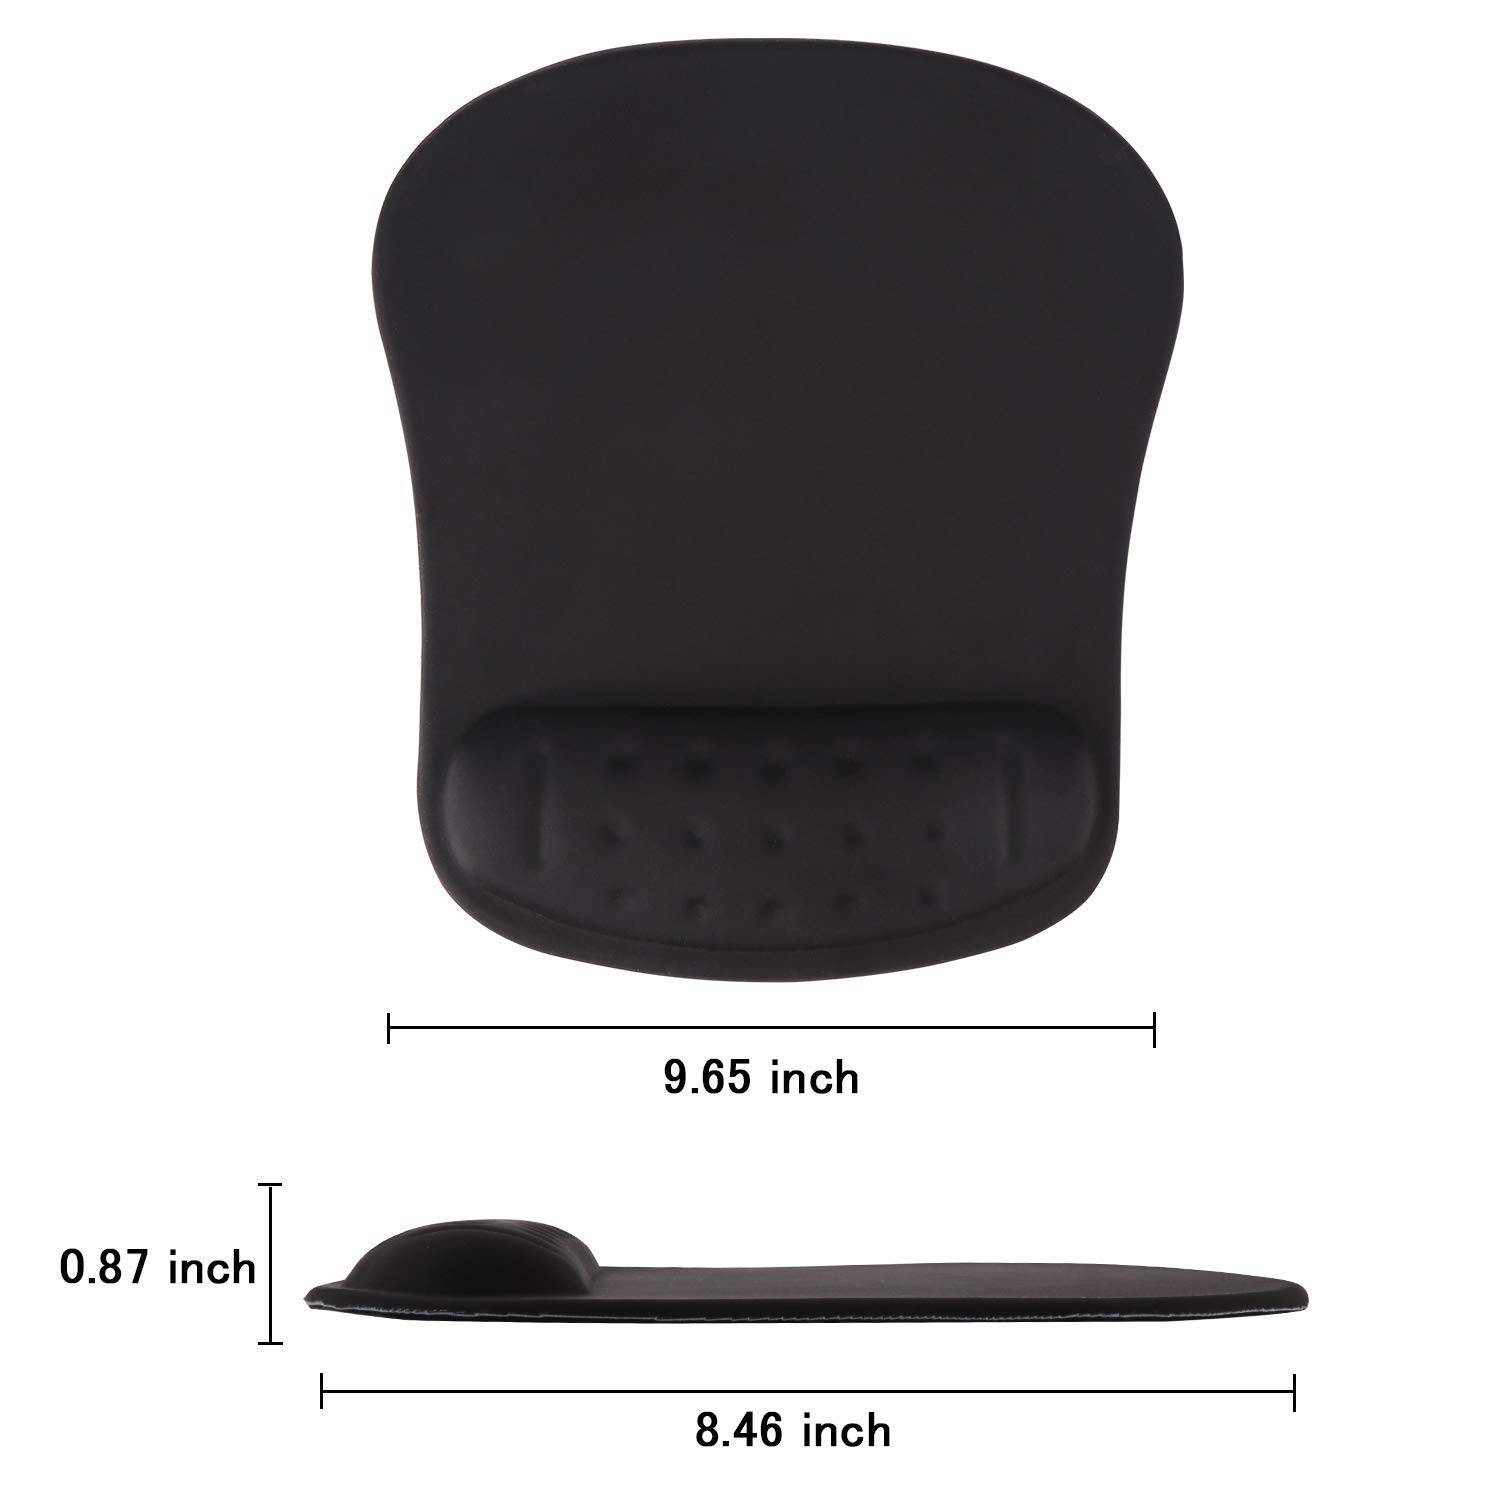 Keyboard Wrist Rest Pad and Mouse Wrist Rest Haocoo Support Mouse Pad Durable /& Comfortable /& Lightweight for Easy Typing /& Pain Relief-Ergonomic Support Grey